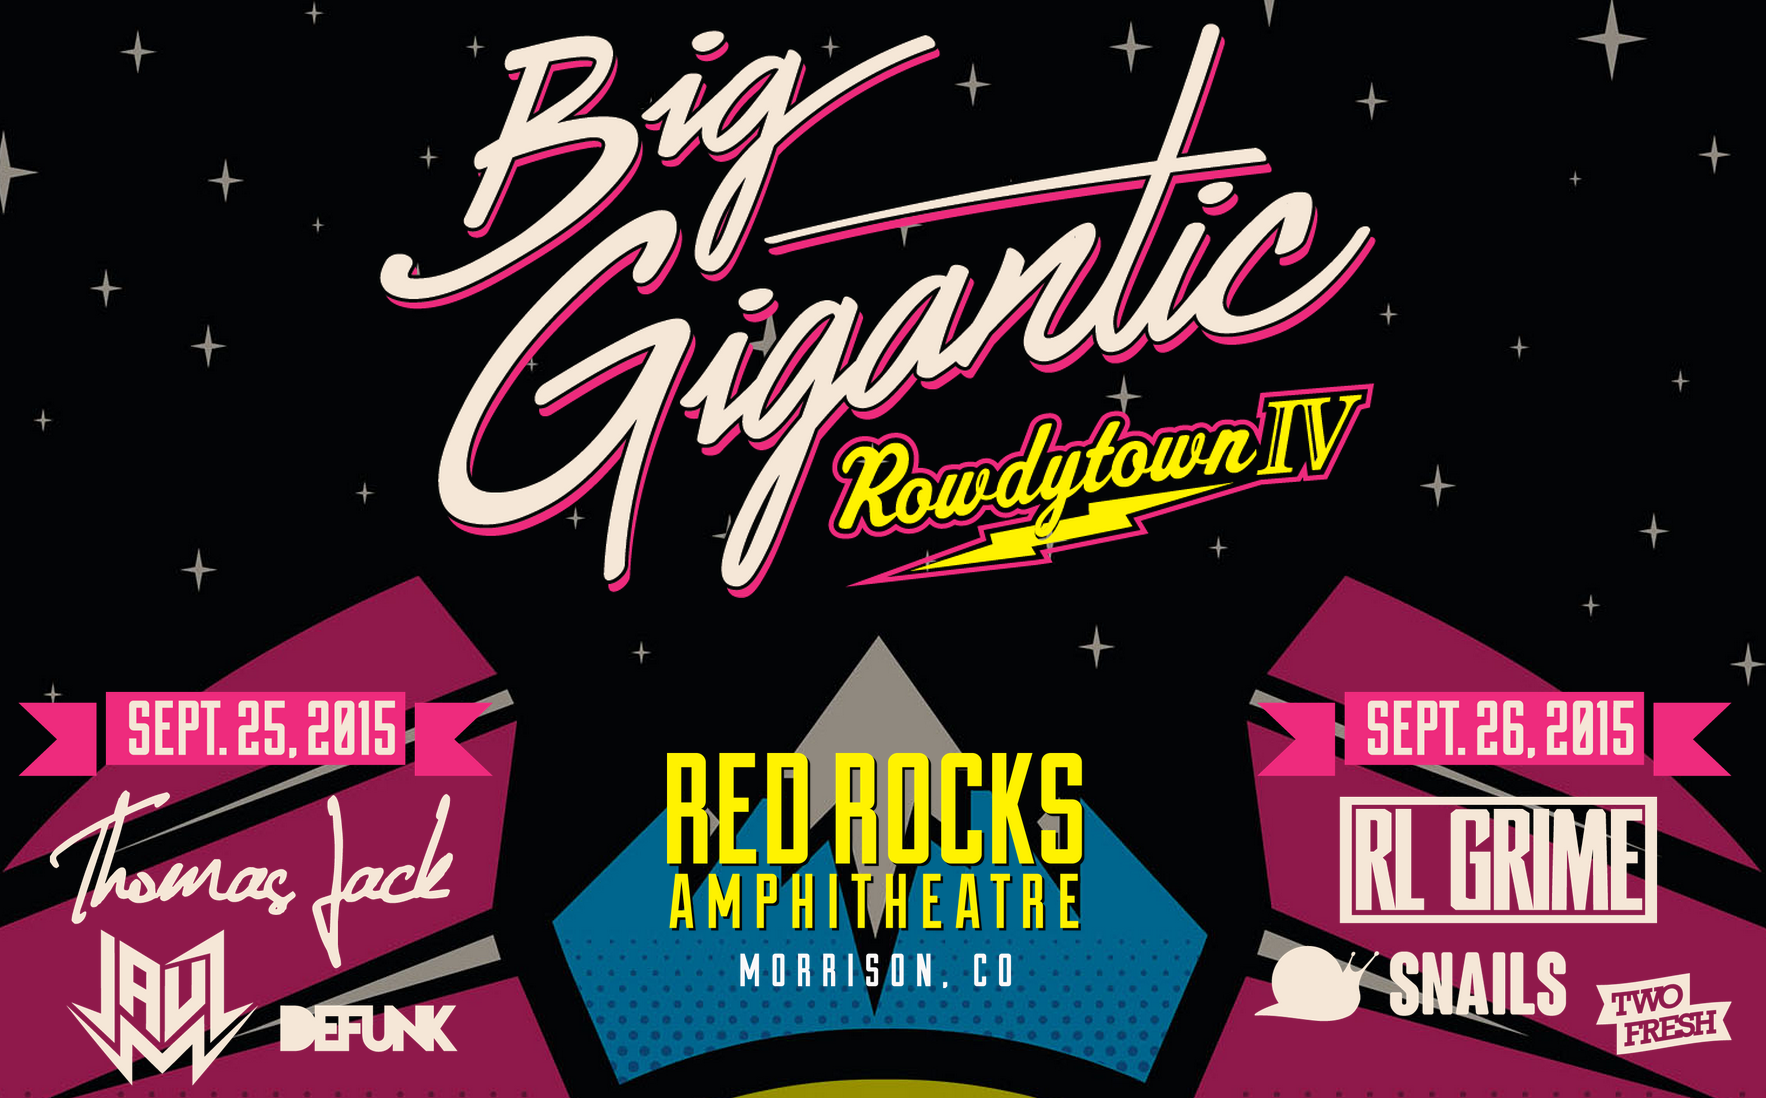 Big Gigantic Announces Rowdytown IV at Red Rocks Amphitheatre.